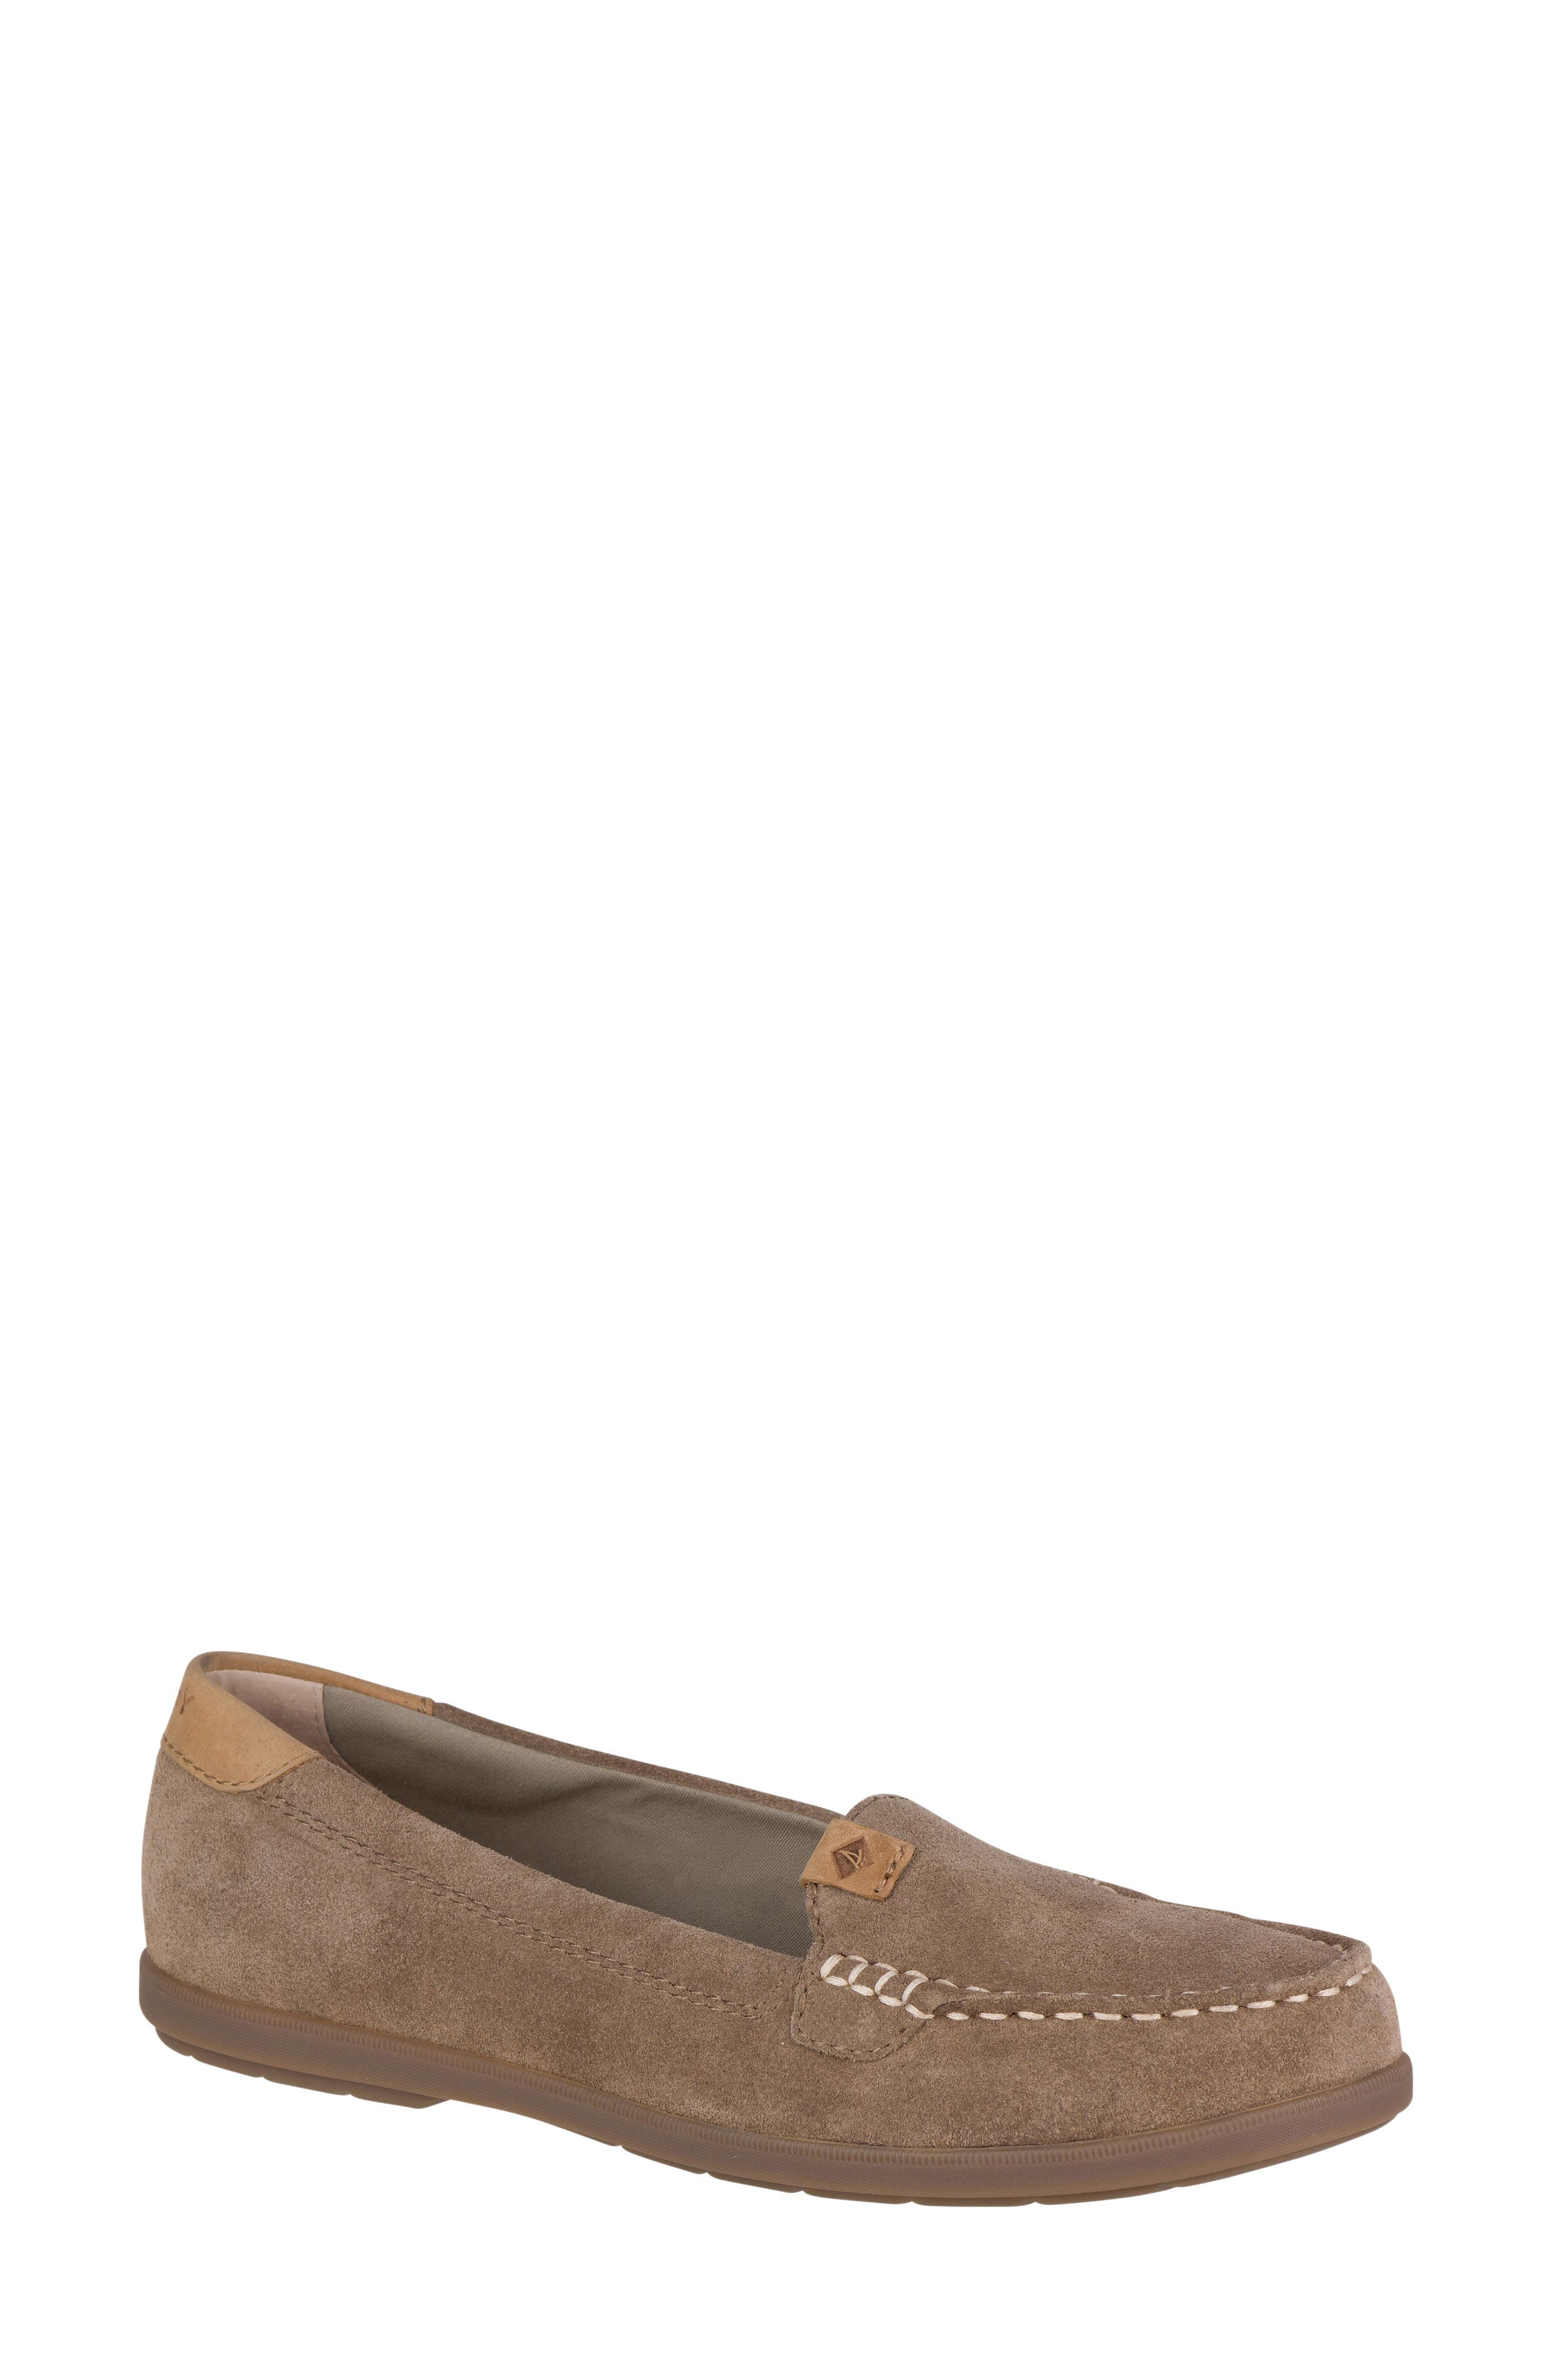 Coil Mia Loafer,                             Main thumbnail 4, color,